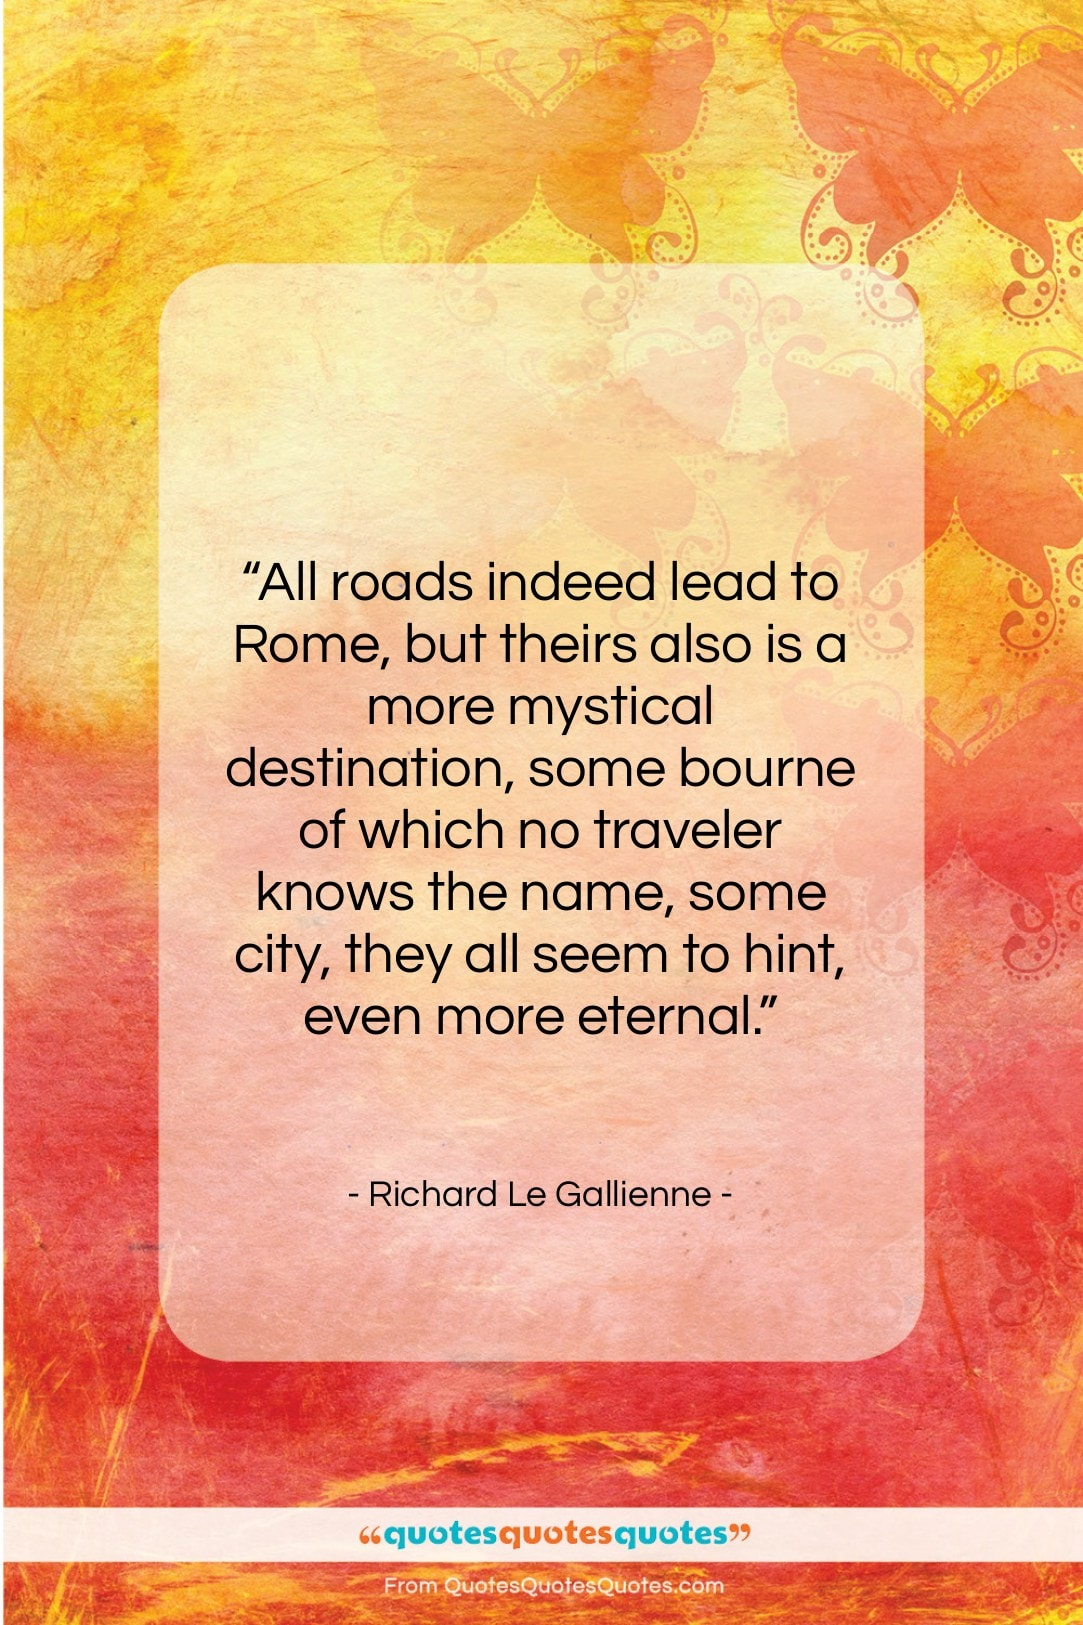 """Richard Le Gallienne quote: """"All roads indeed lead to Rome, but…""""- at QuotesQuotesQuotes.com"""